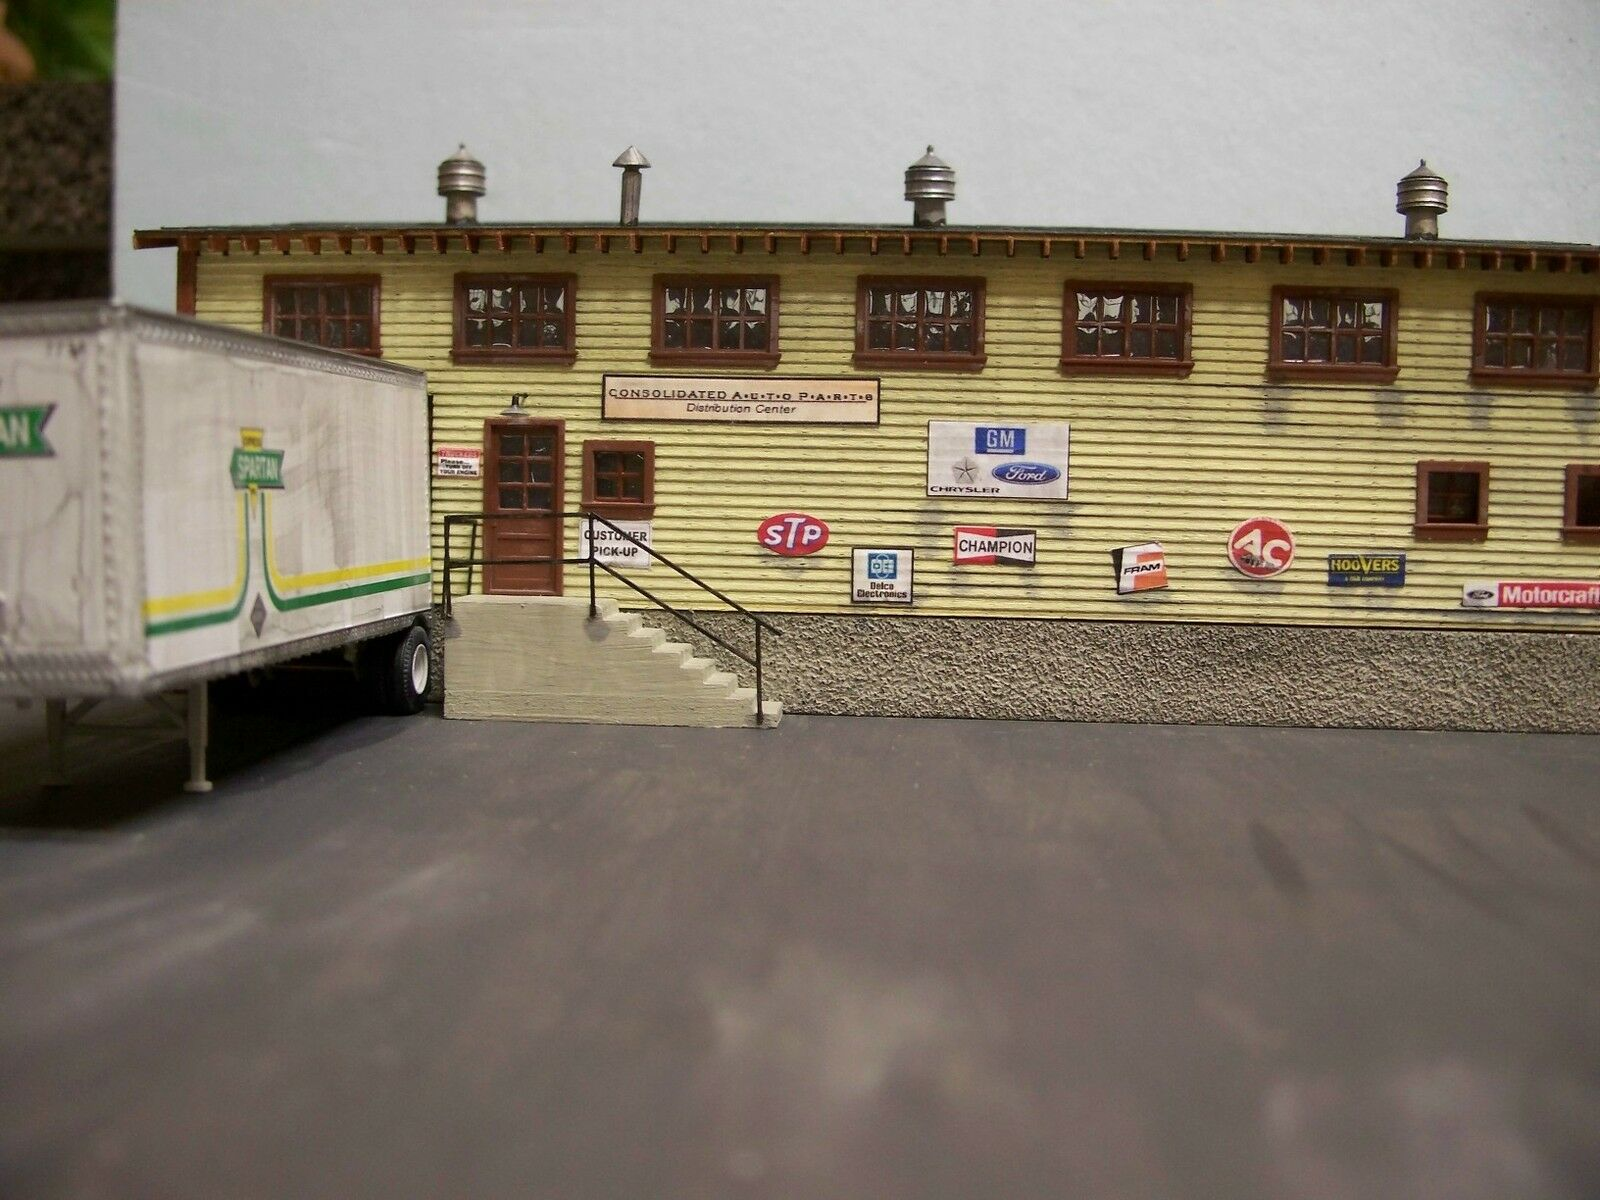 Motrak modellolos Consolidated Auto Parts Co. Structure Kit, HO Scale